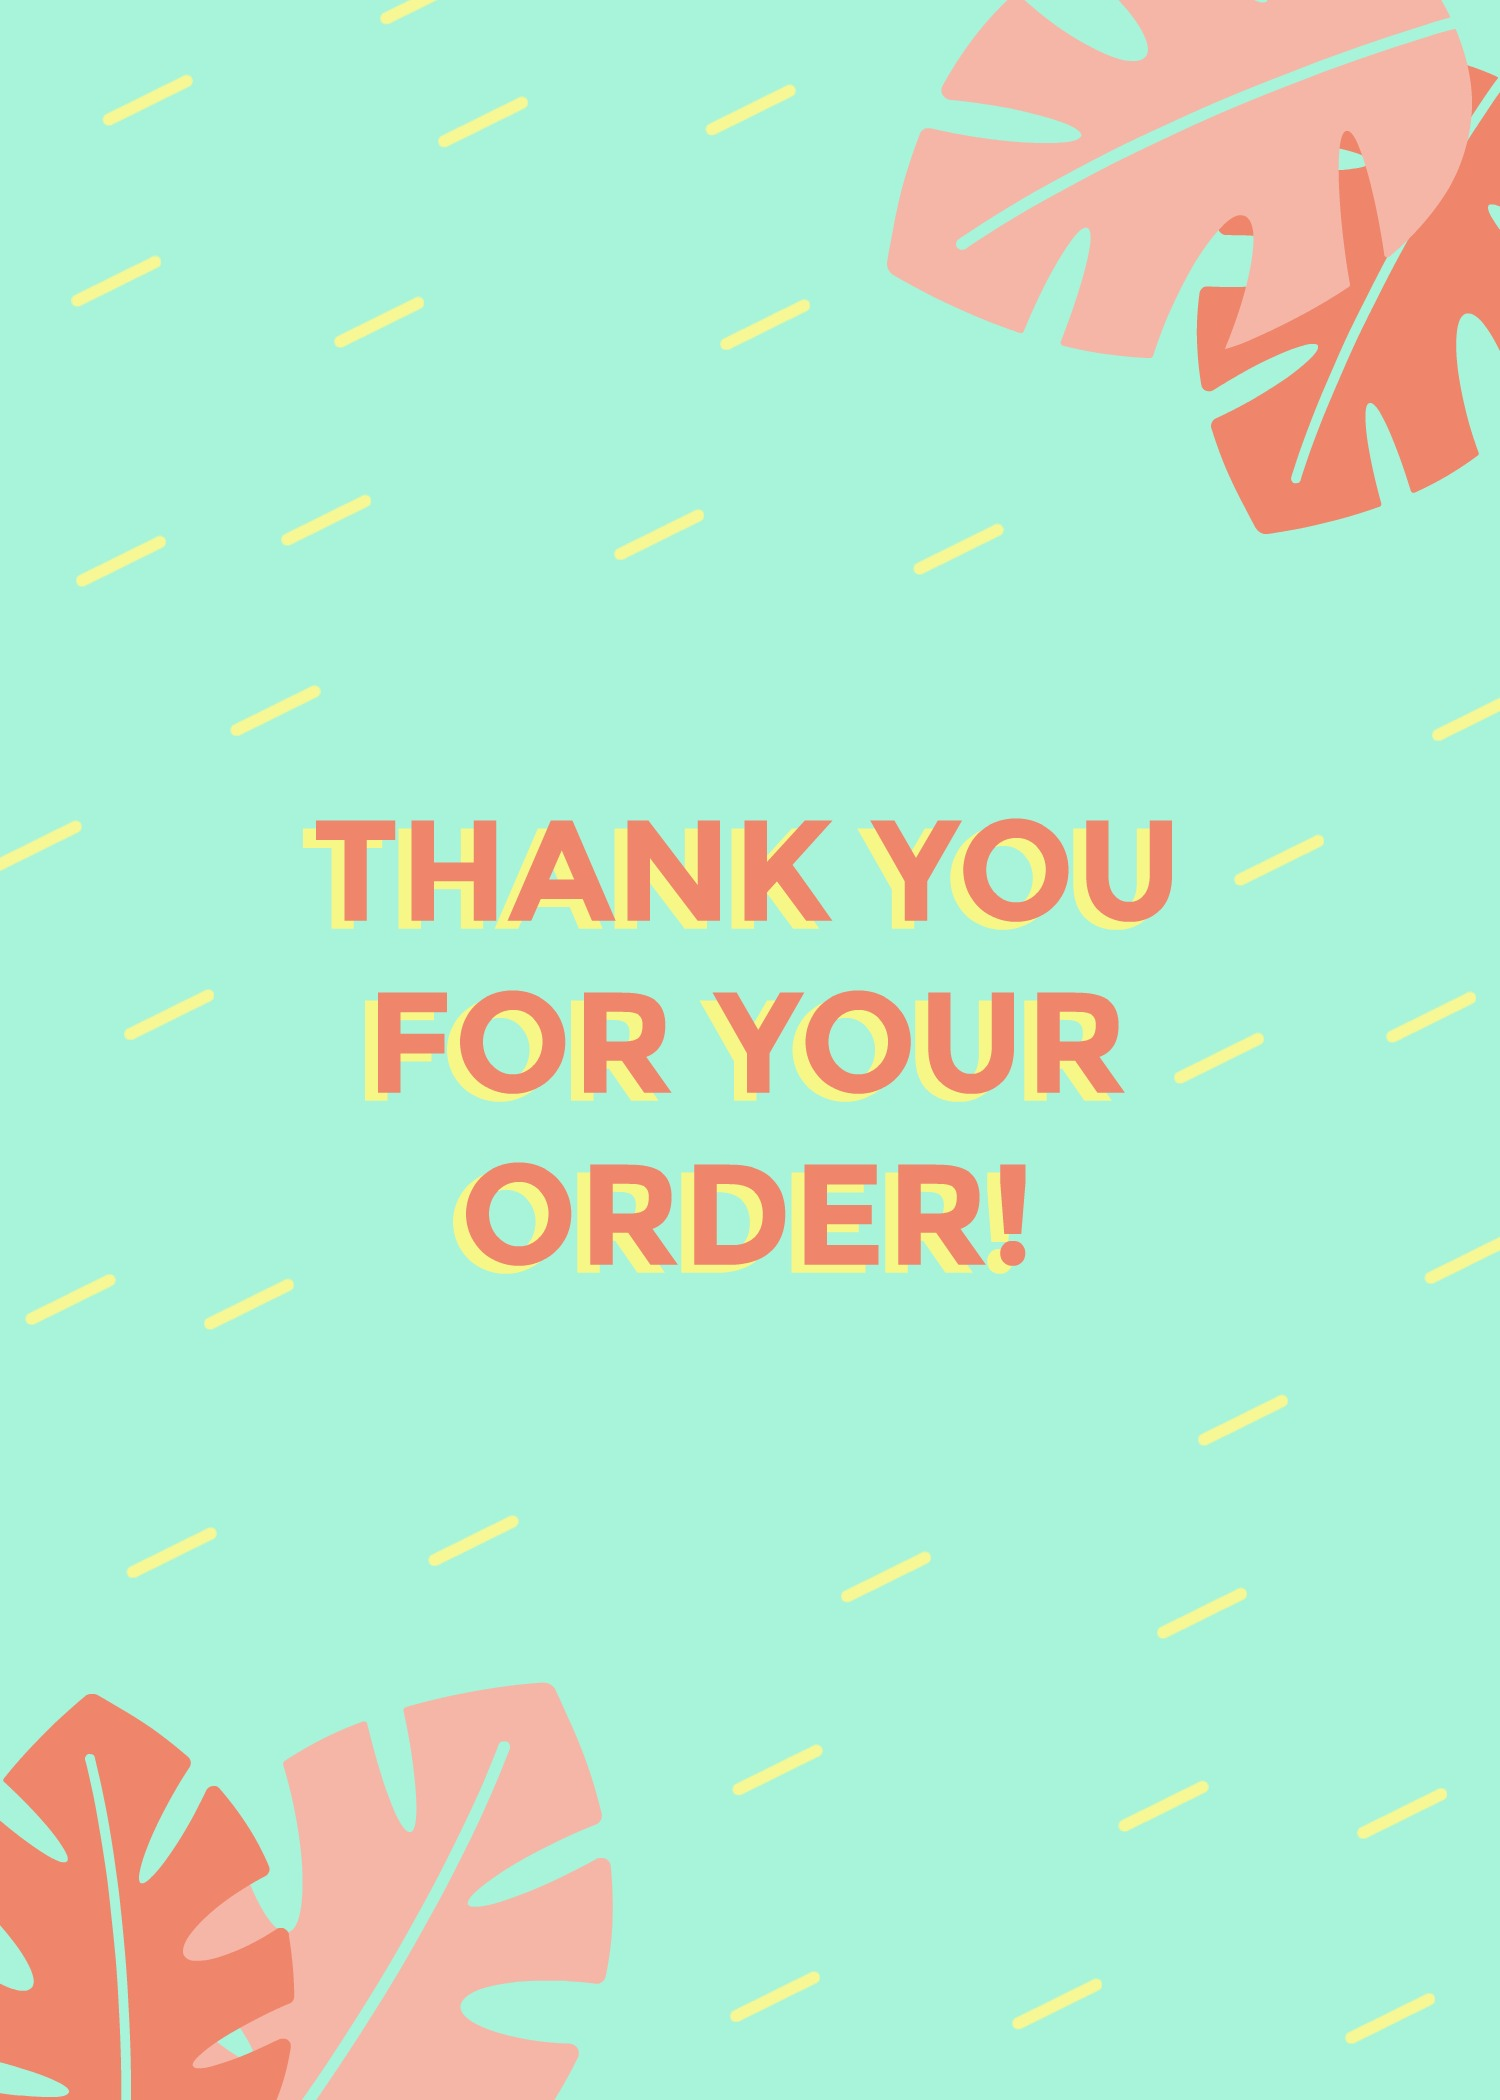 Thank You For Your Order >> Thank You For Your Order Picmonkey